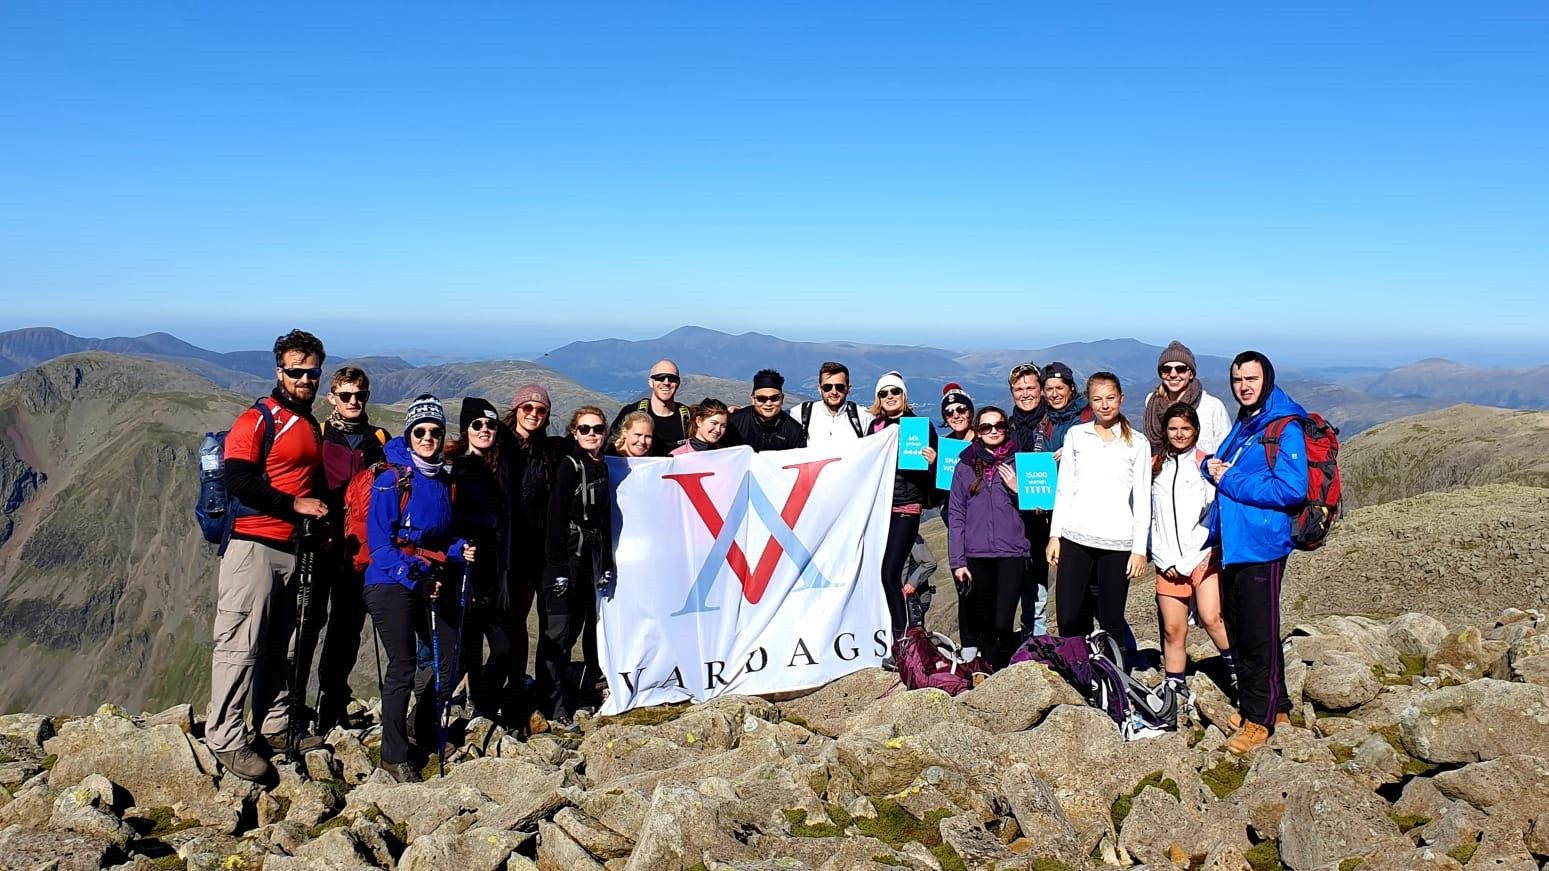 Vardags scales 24 peaks for Smartworks